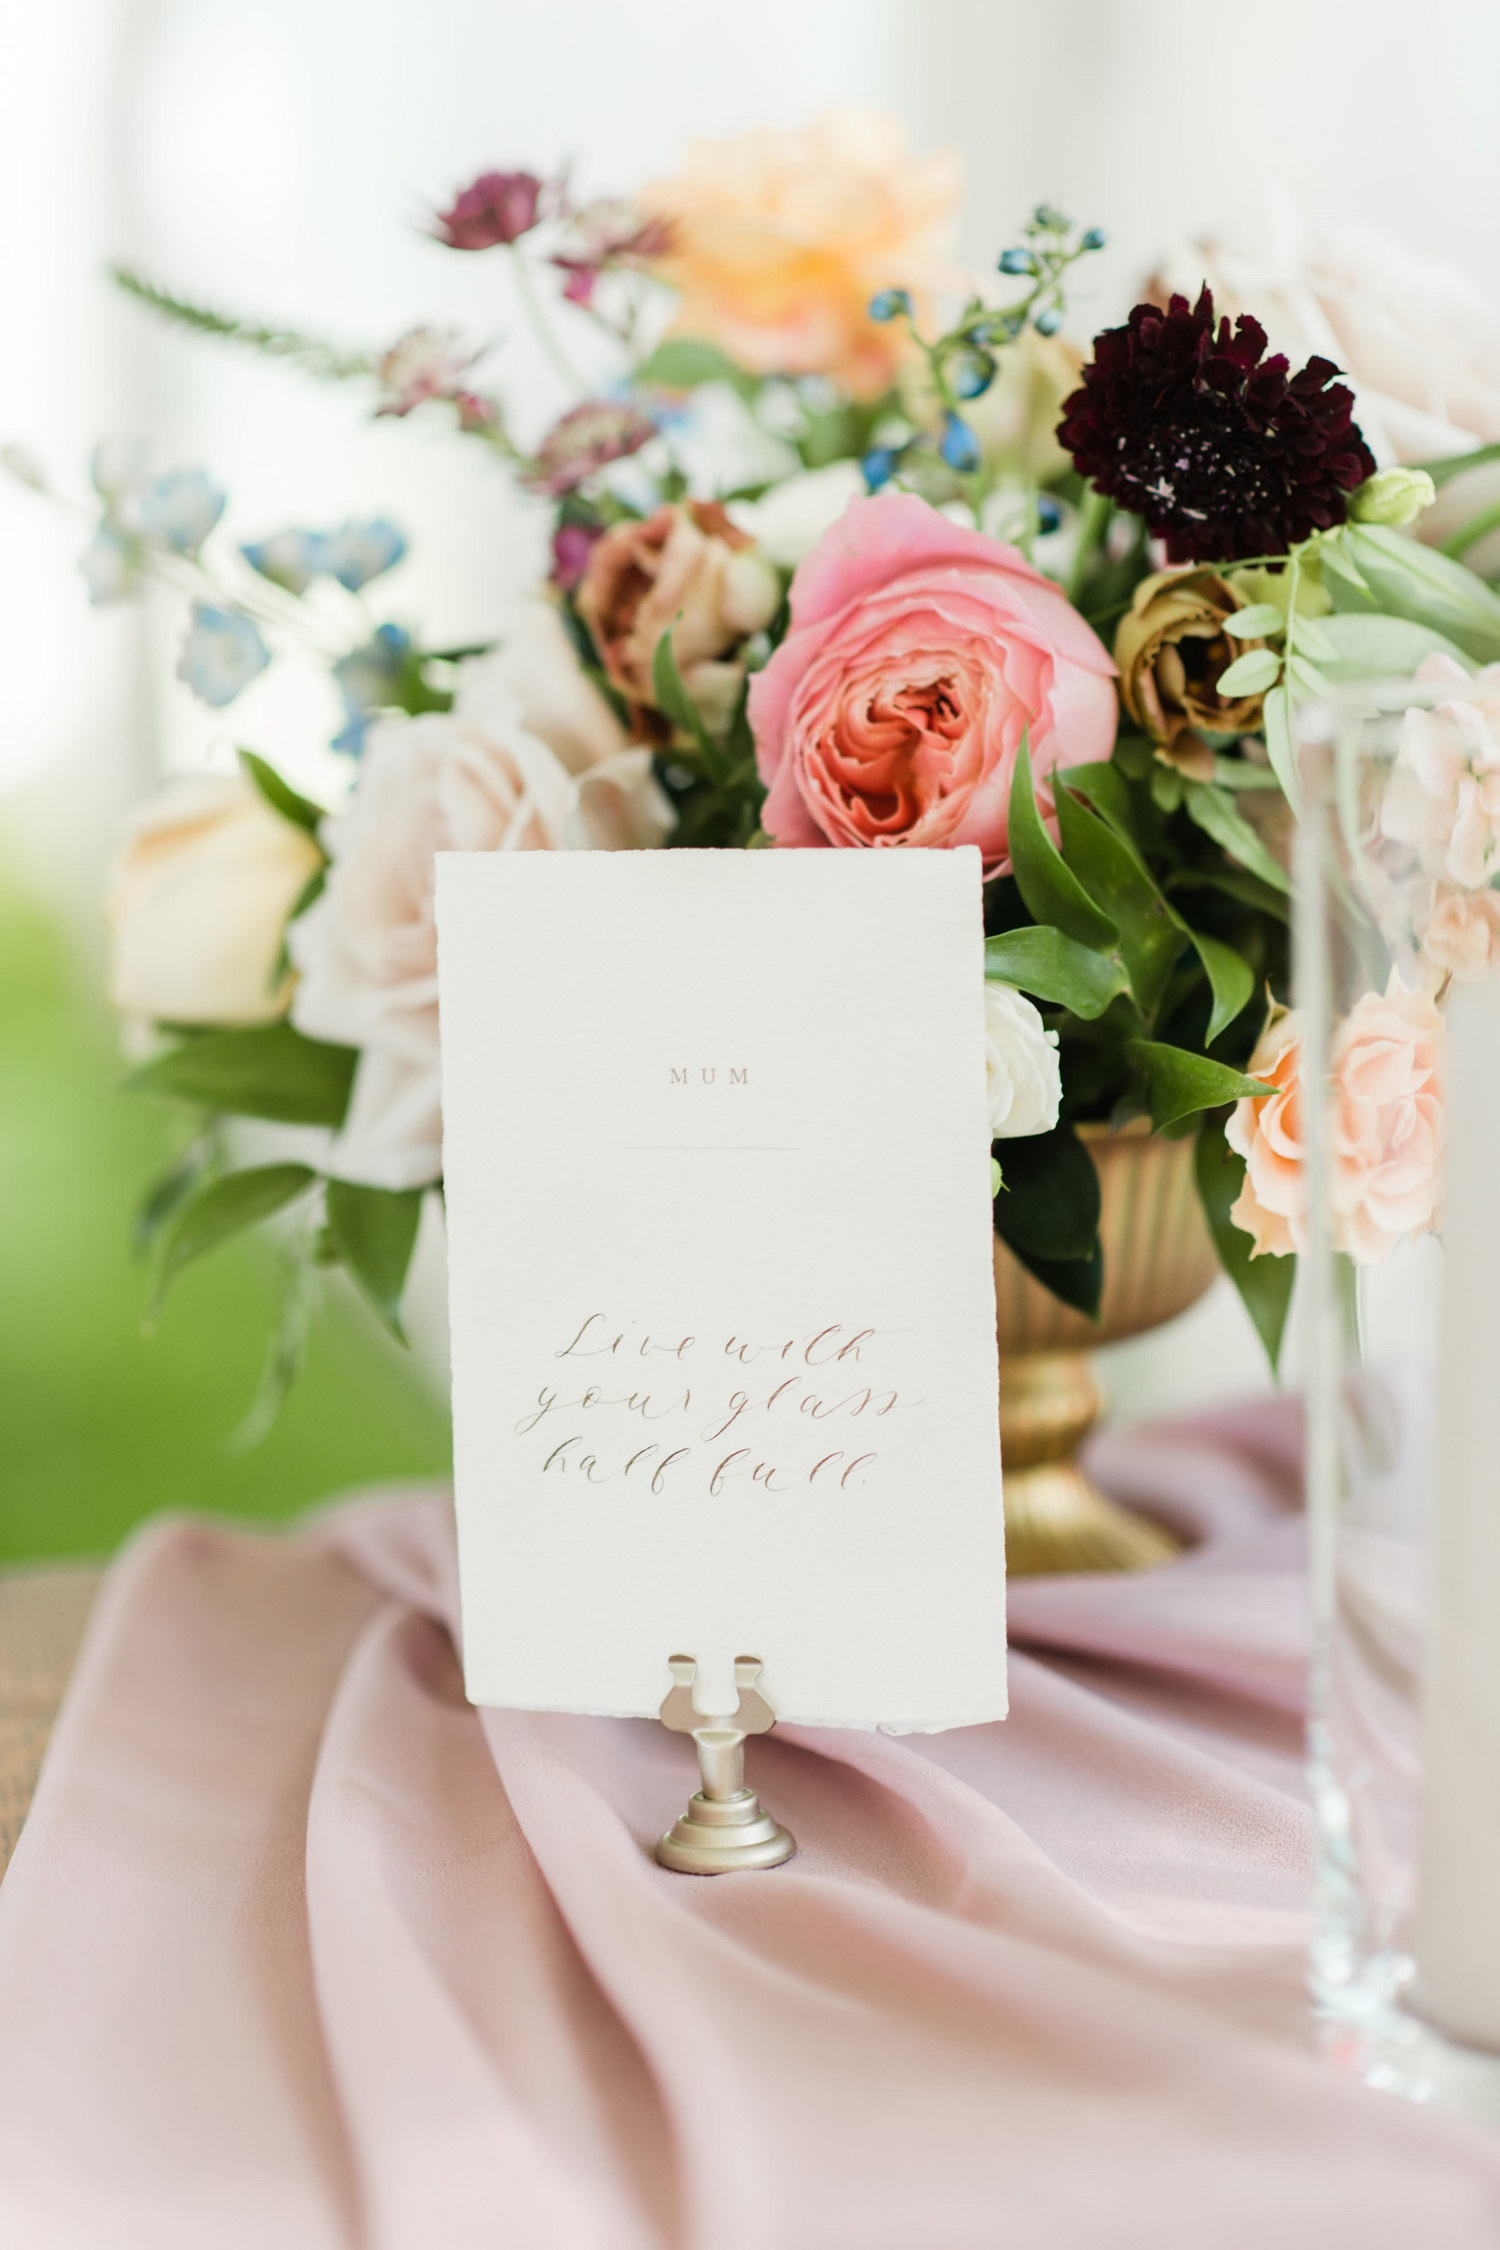 niagara_wedding_planner_473.jpg